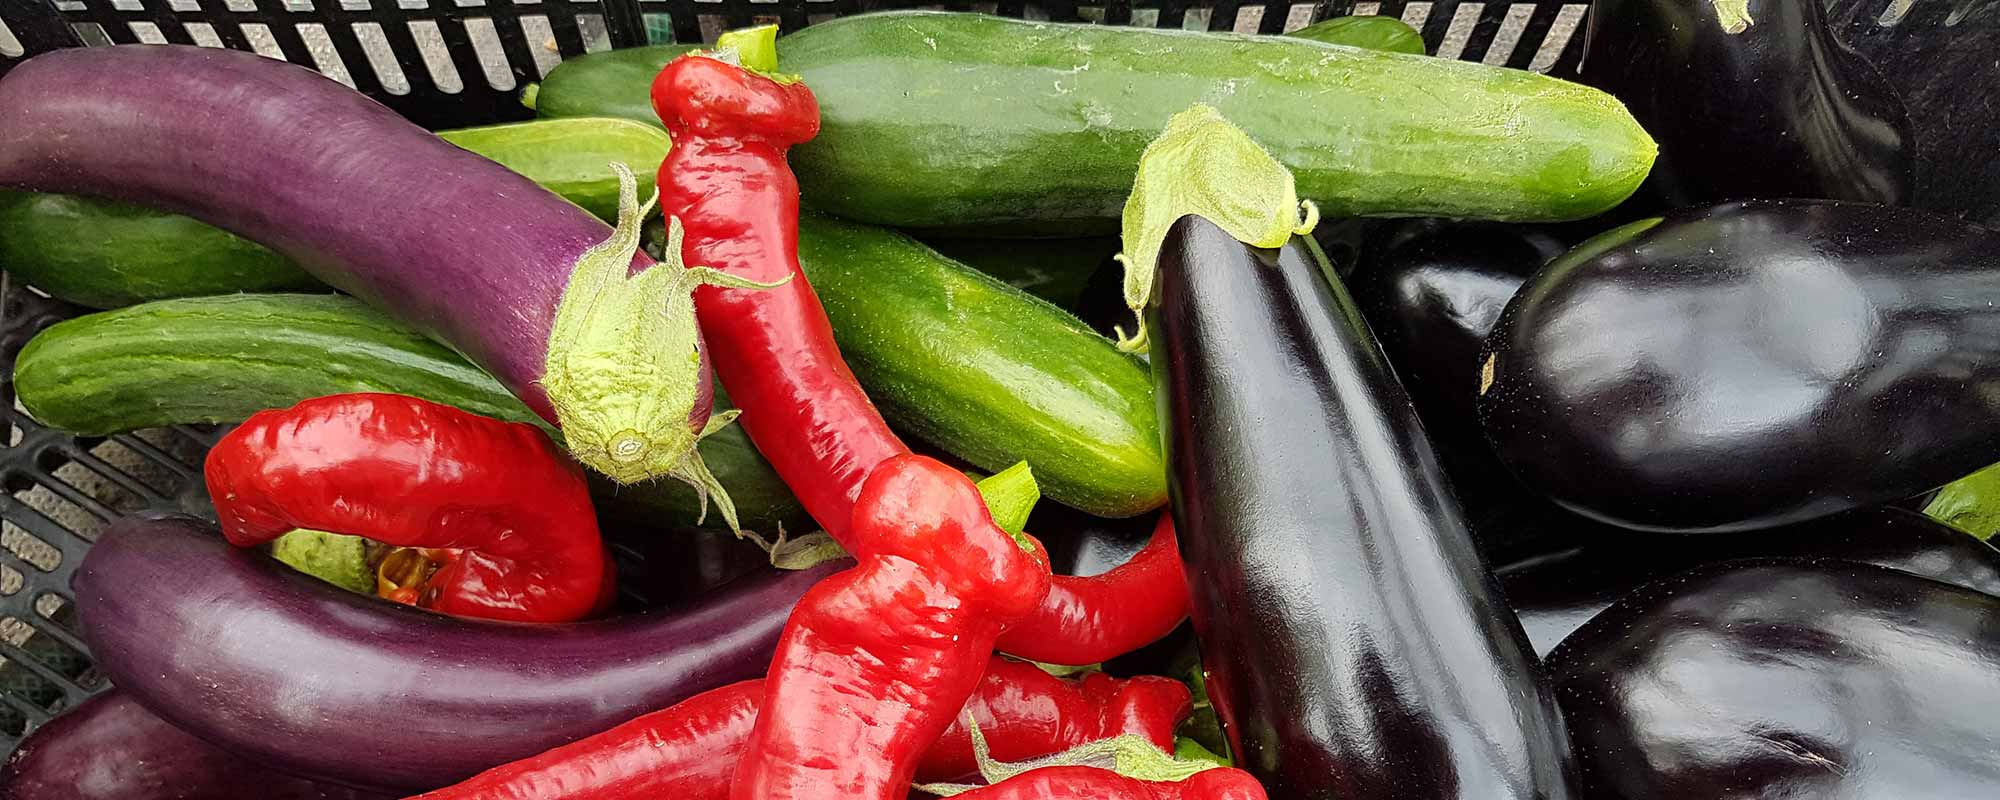 lux-organics-peppers-eggplants-cucumbers